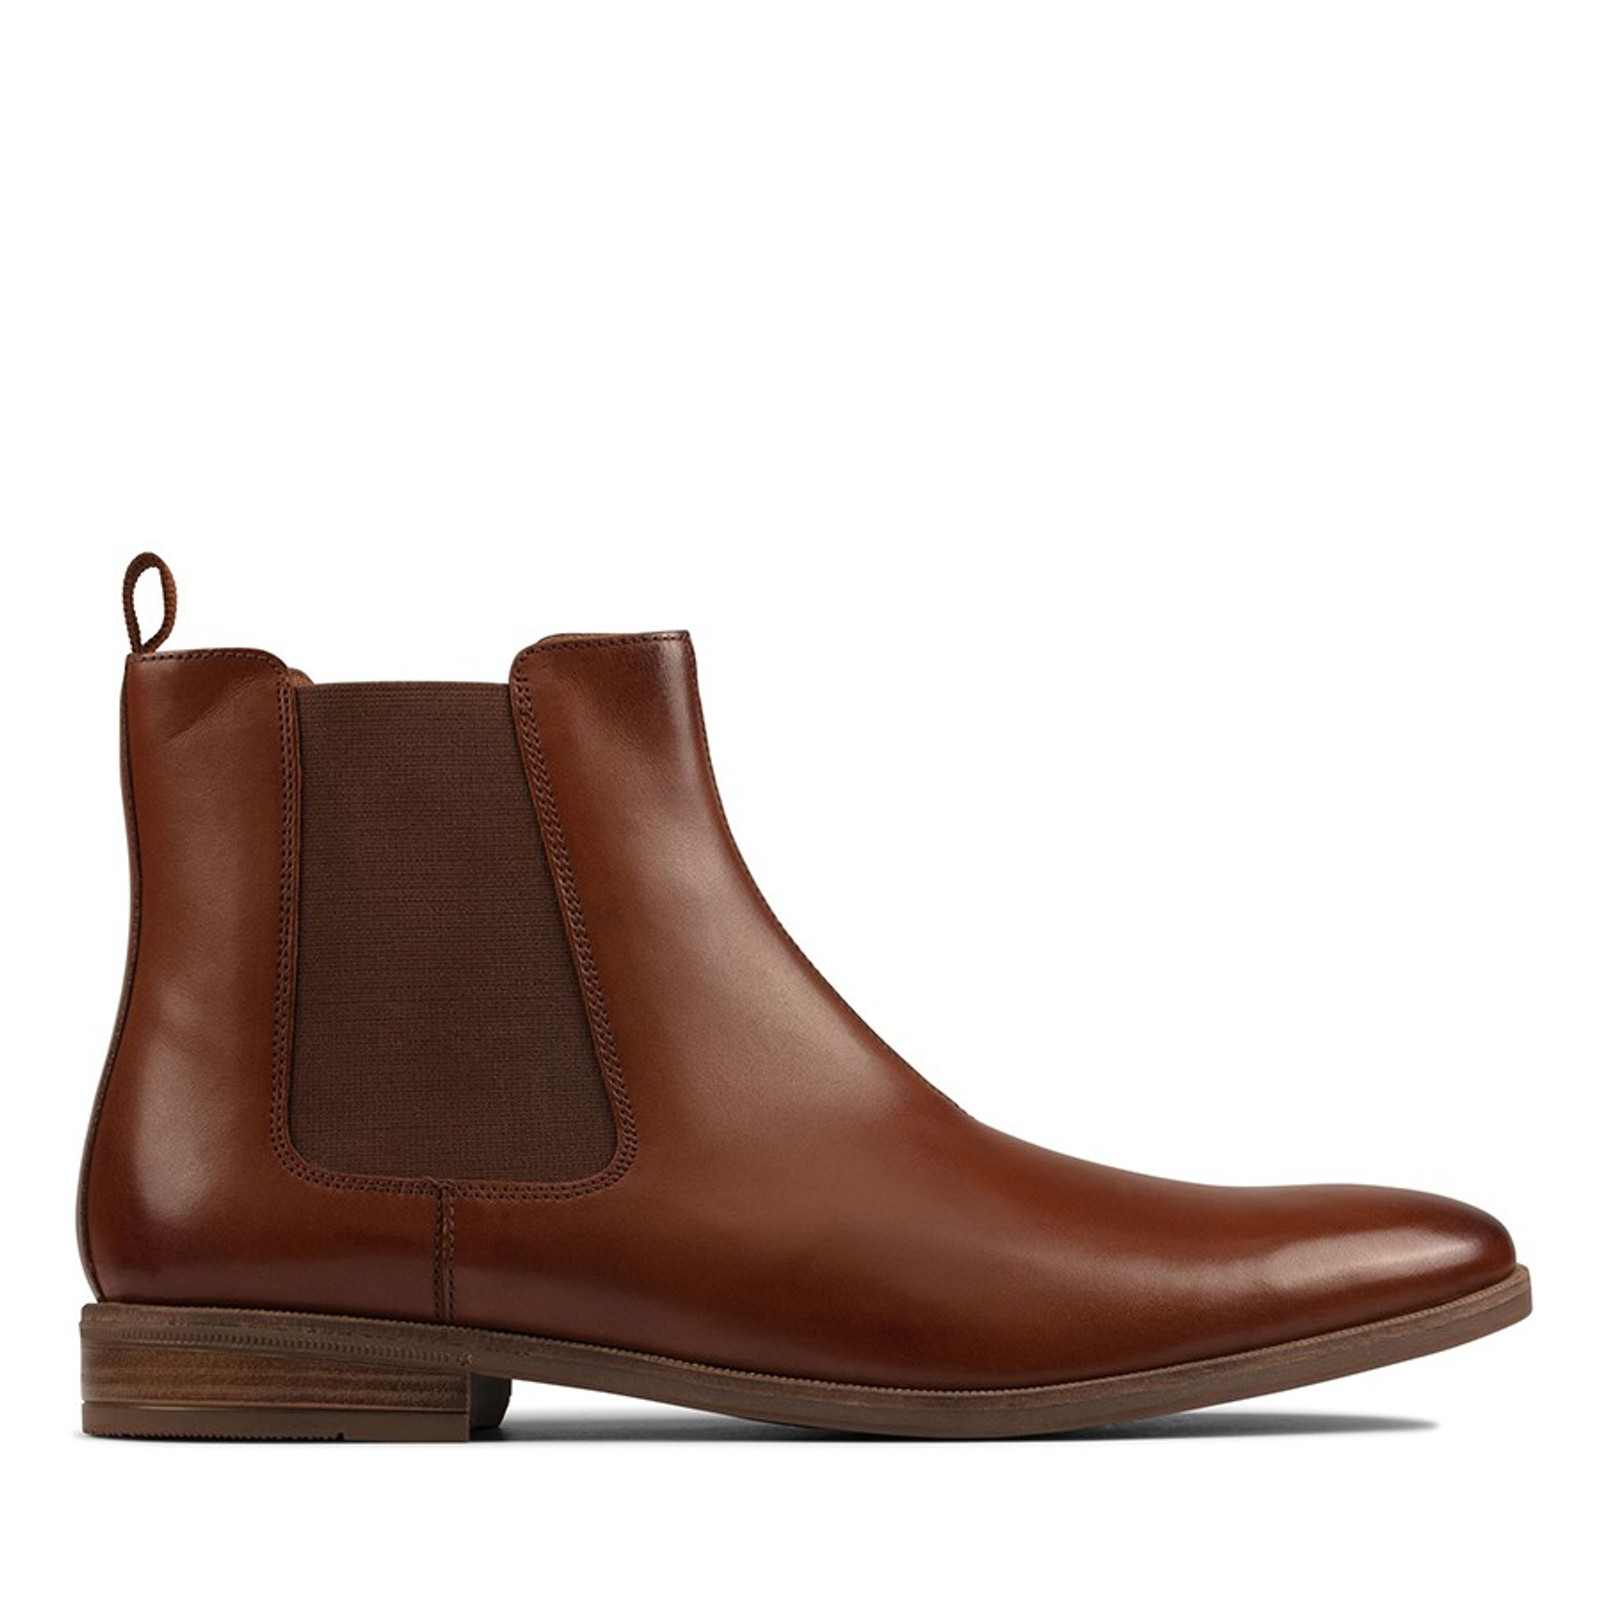 Clarks Mens STANFORD TOP British Tan Leather